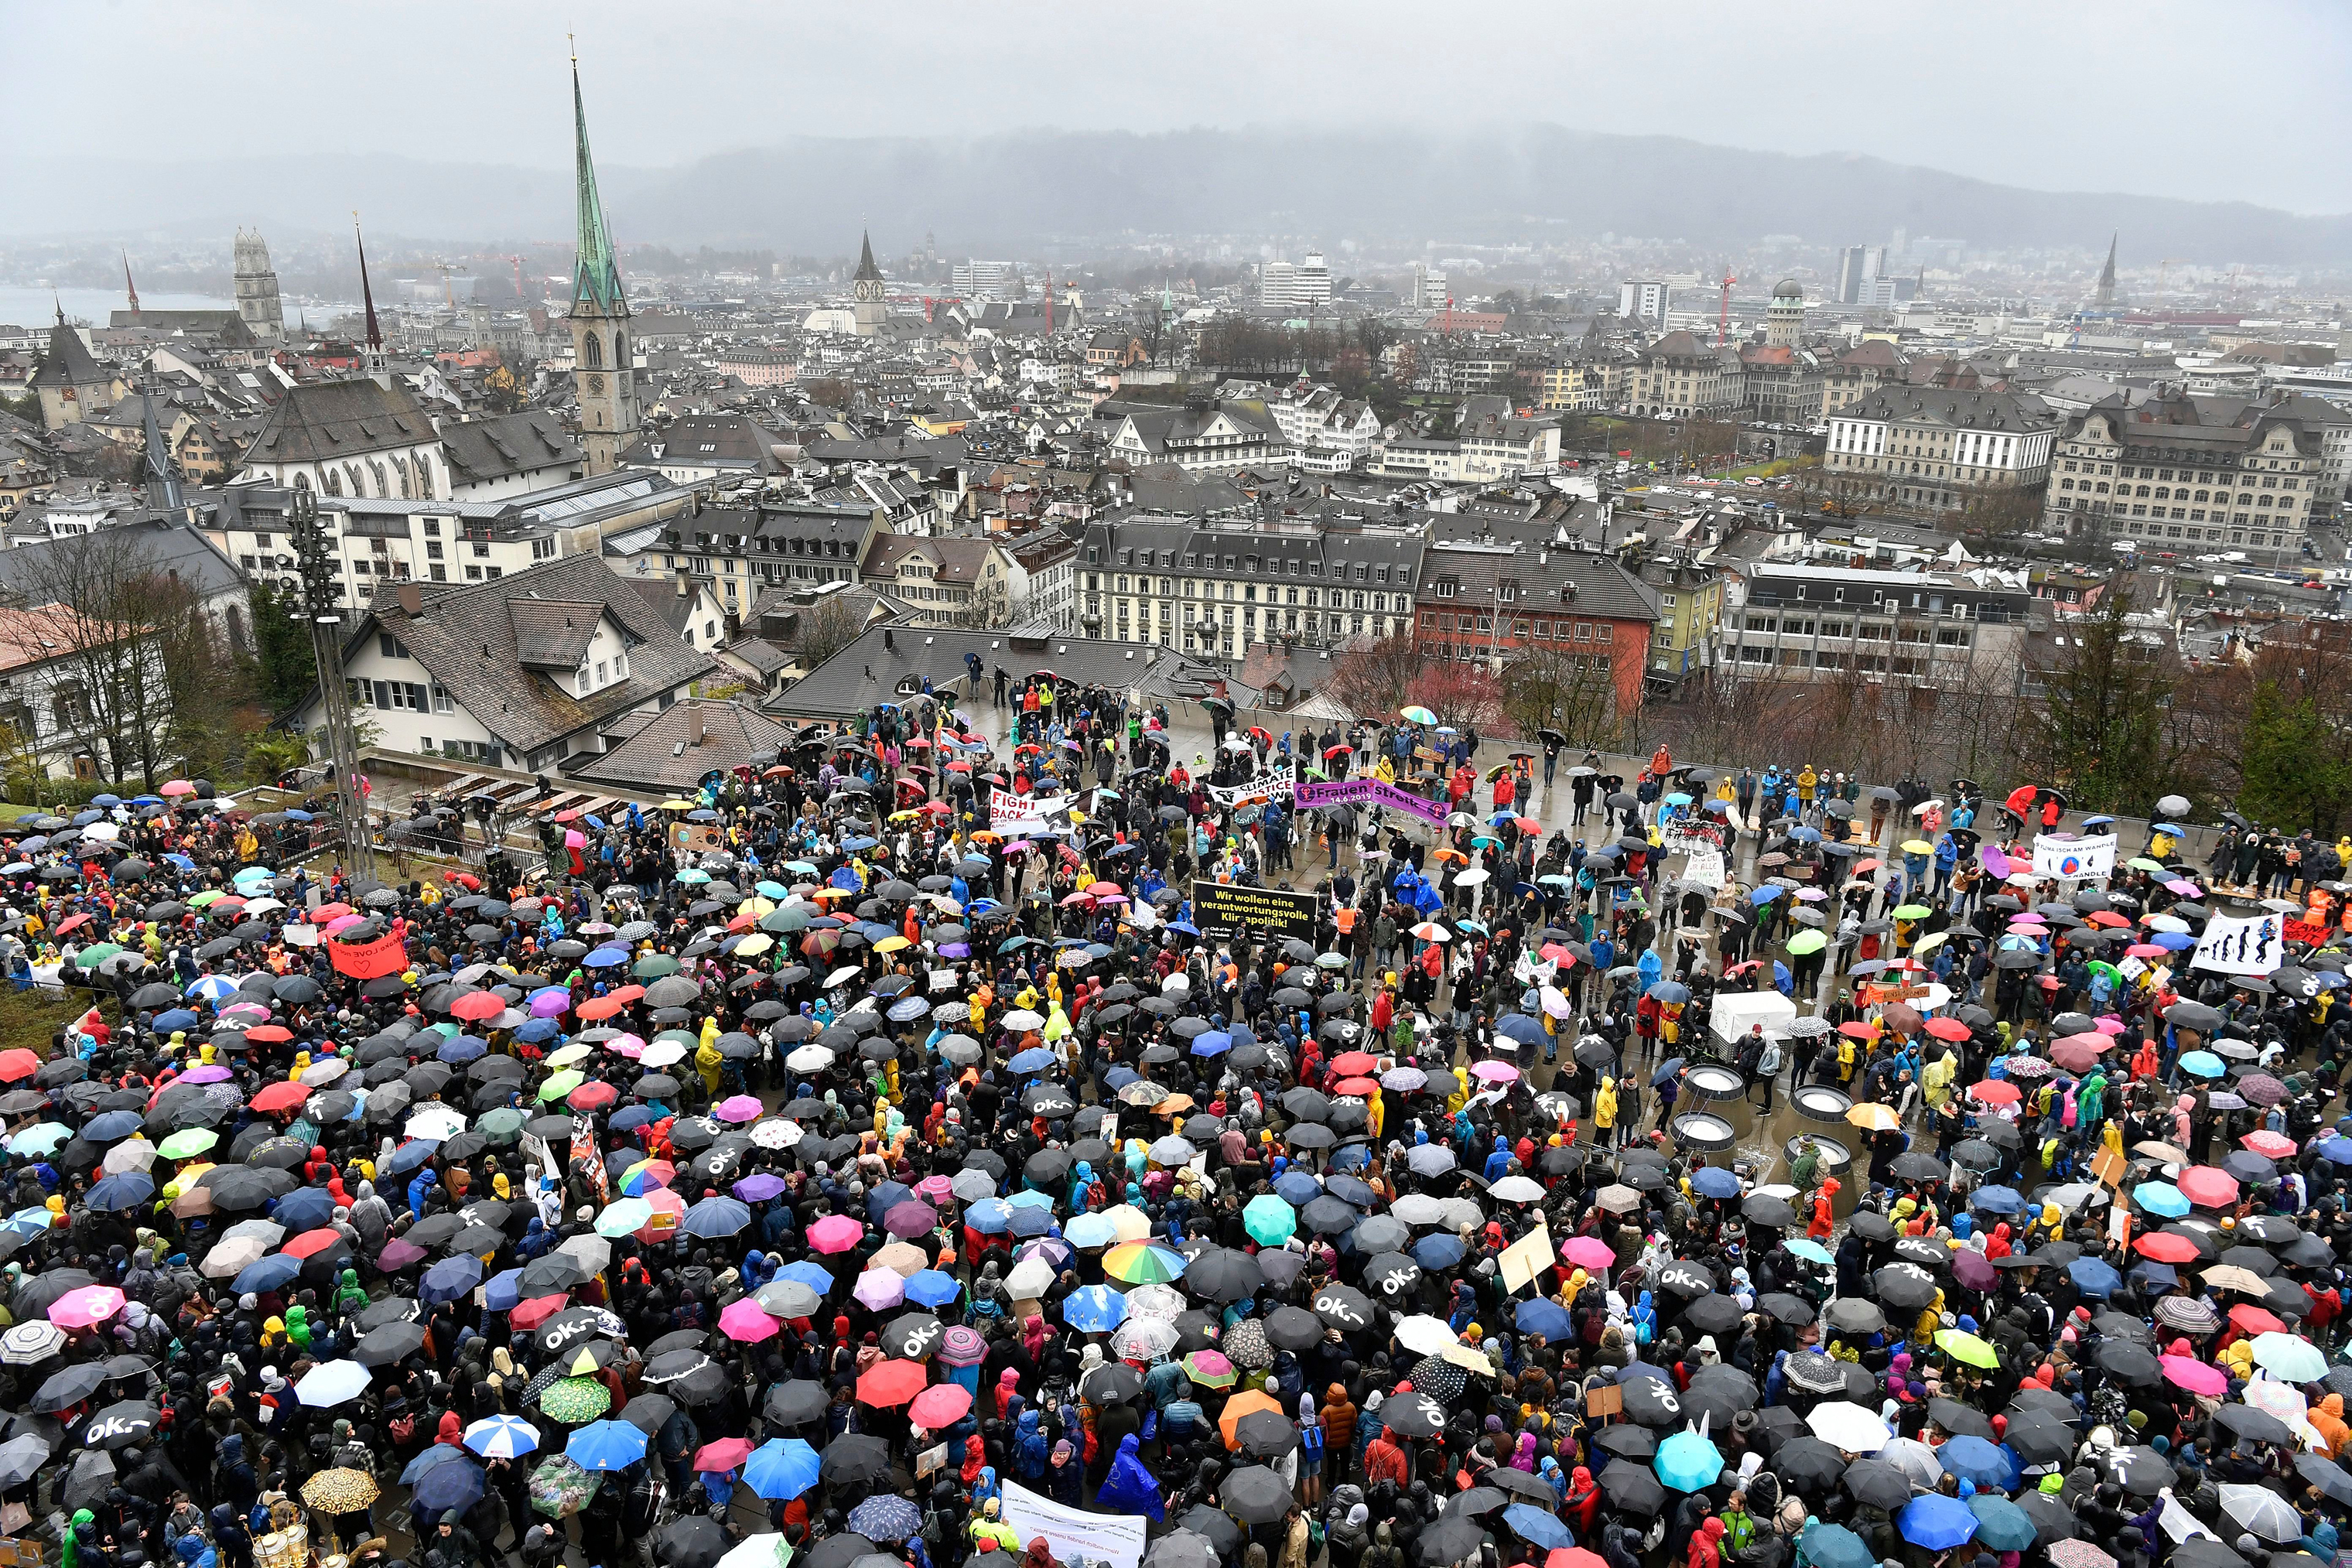 Thousands of students demonstrated during a 'climate strike' protest in Zurich, Switzerland, on March 15, 2019.